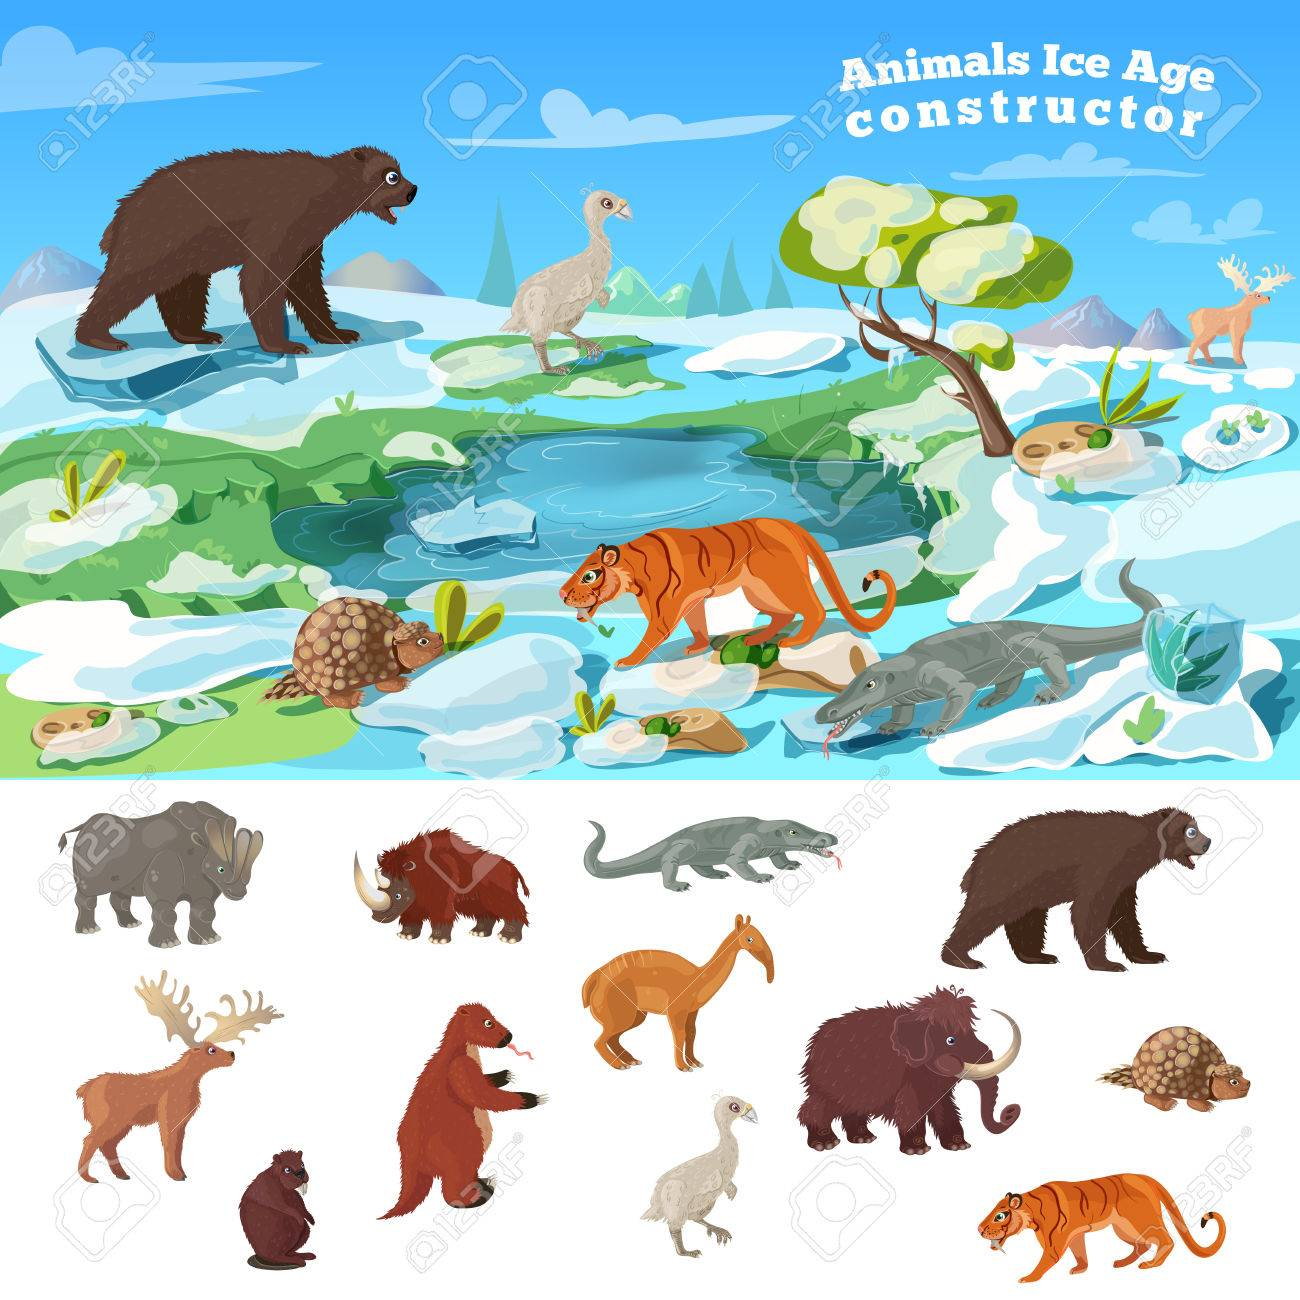 Animals ice age concept with wildlife design and set of beasts..